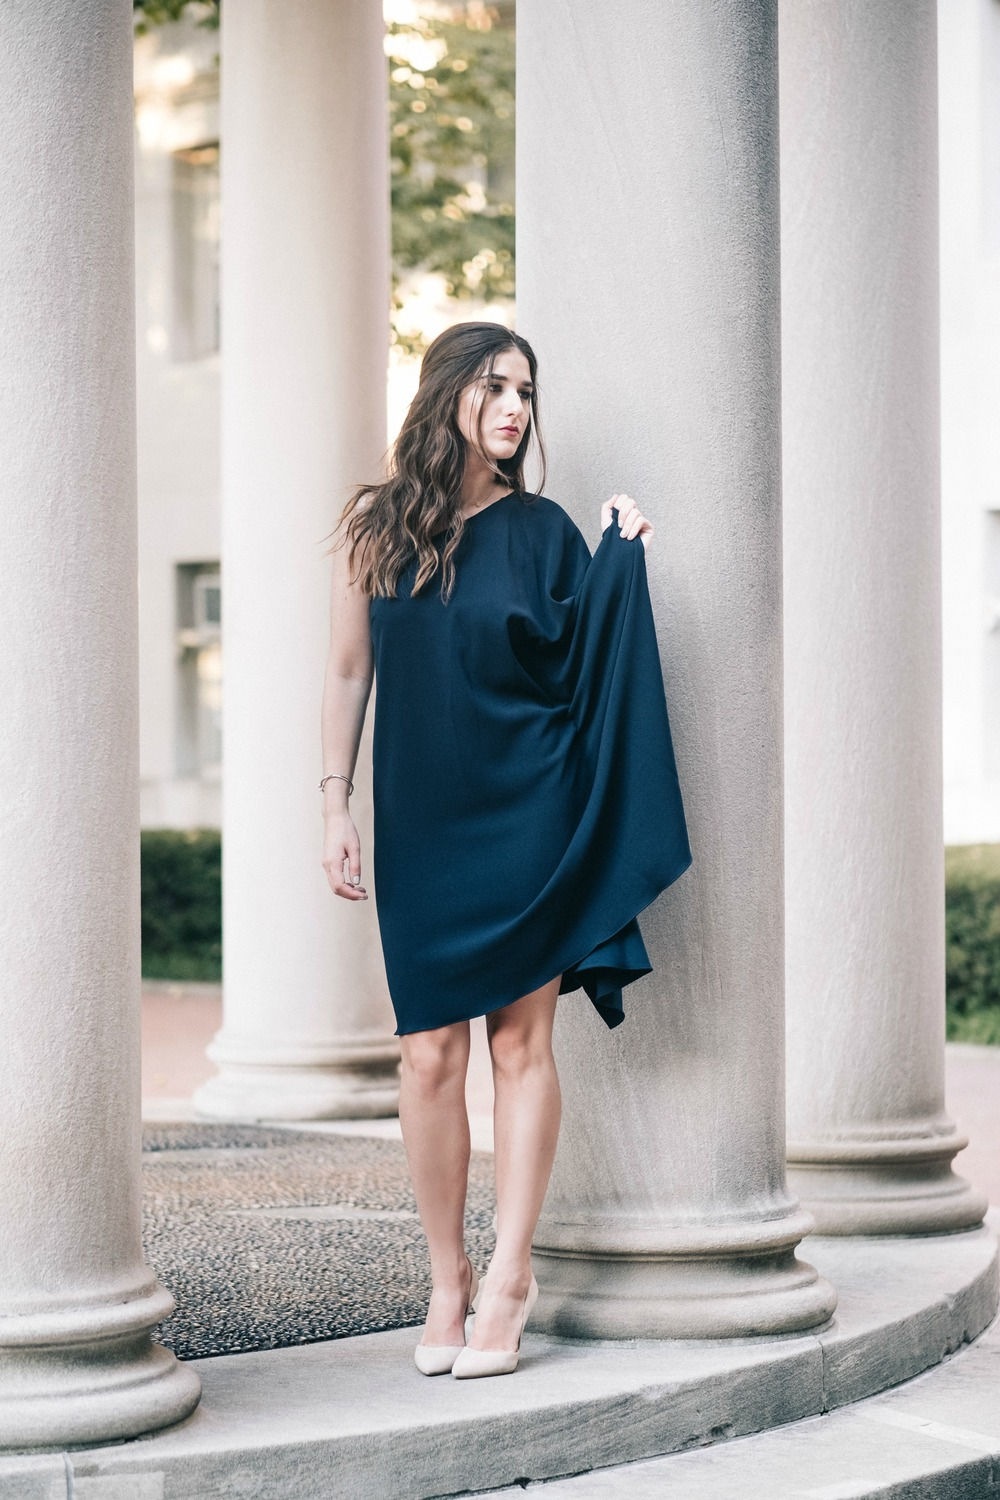 One Shoulder Dress Jay Godgrey Louboutins & Love Fashion Blog Esther Santer NYC Street Style Blogger Outfit OOTD Trendy Girl Women Elegant Fancy Attire Hair Inspo Photoshoot Nude Heels Steve Madden Navy Pretty Shopping Gold Jewelry Buy Shoes Beautiful.jpg